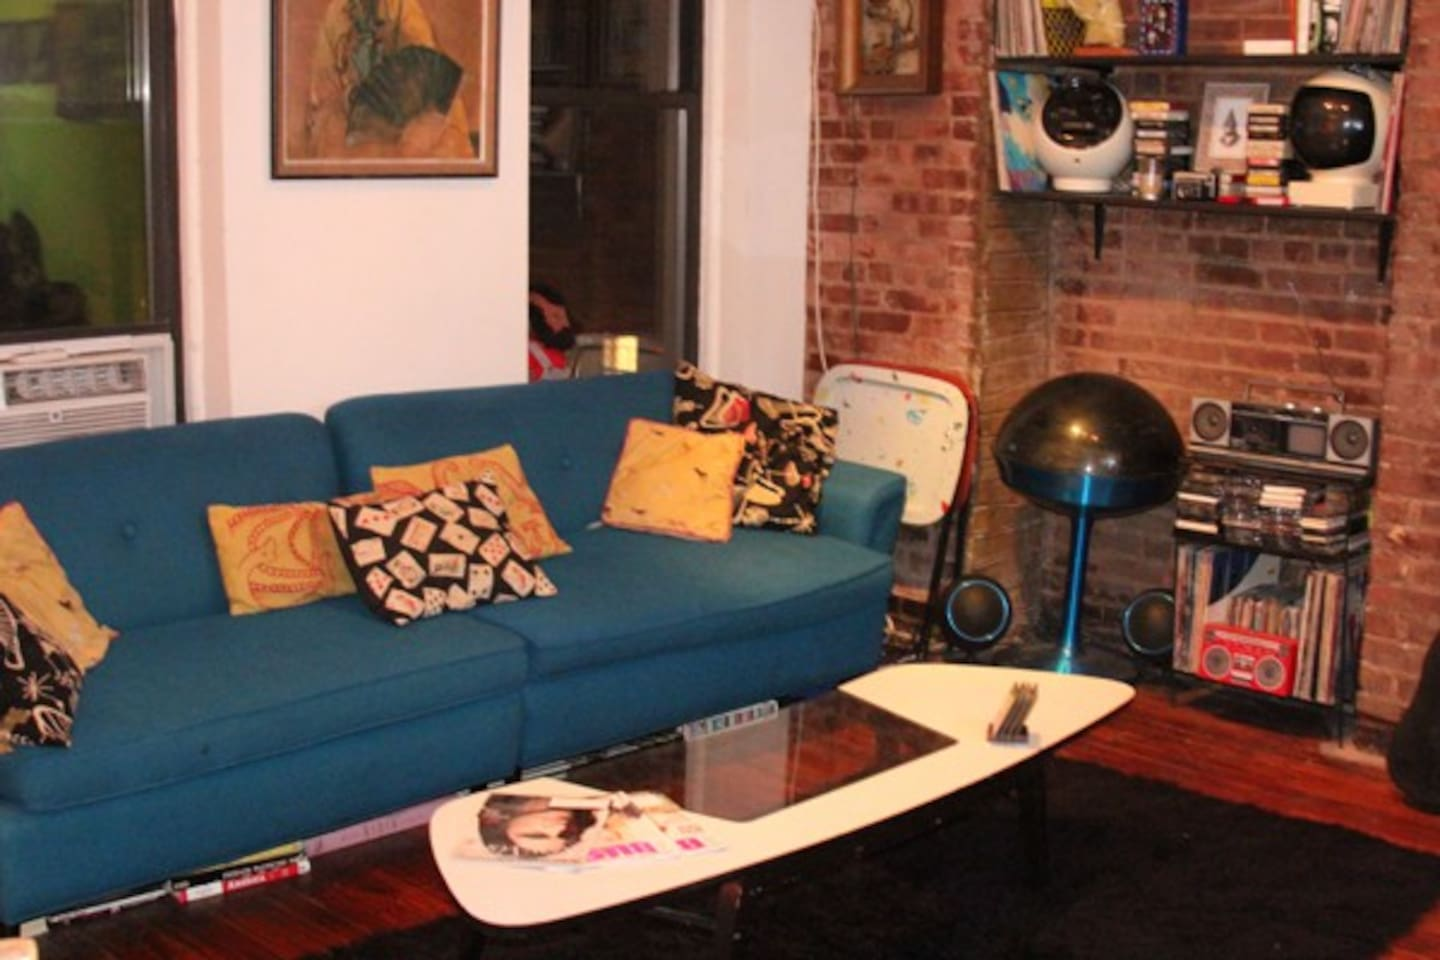 Great couch for a guest to sleep on or to lounge on while watching some cable TV on the large flat screen.